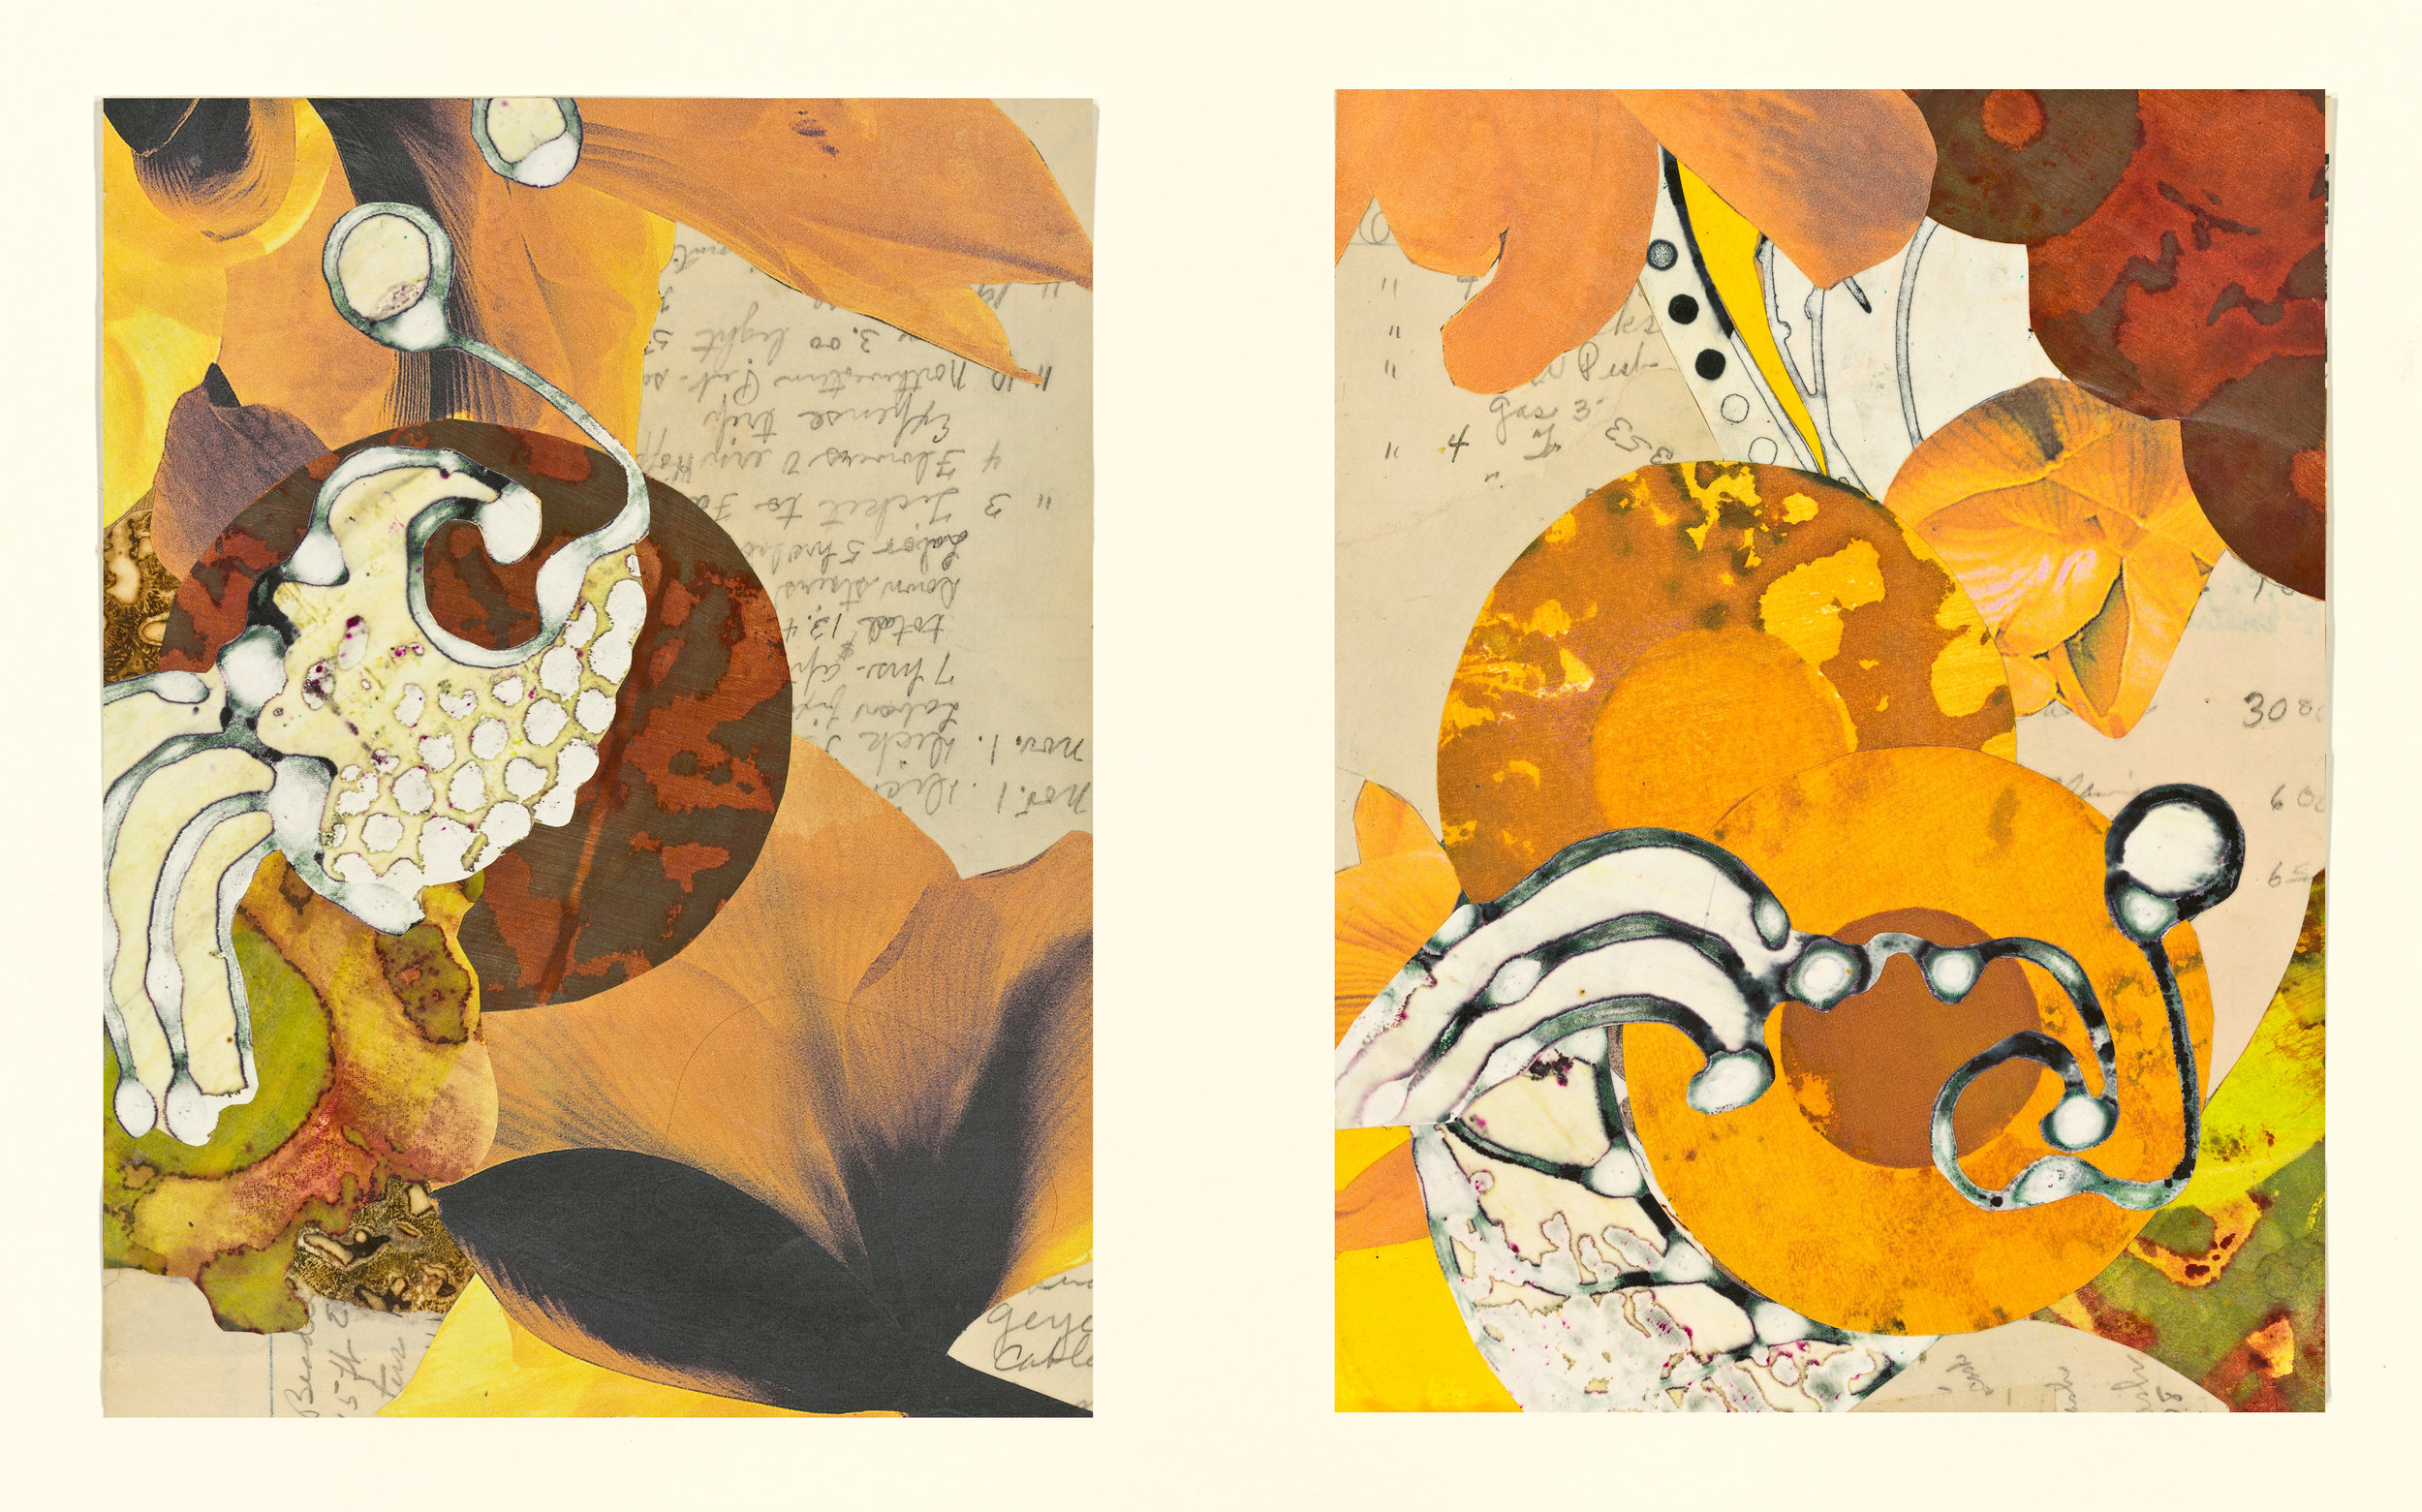 """Edna's Accounts - Orange Circles"", mixed media collage, 14"" x 18"", $525 (framed)"